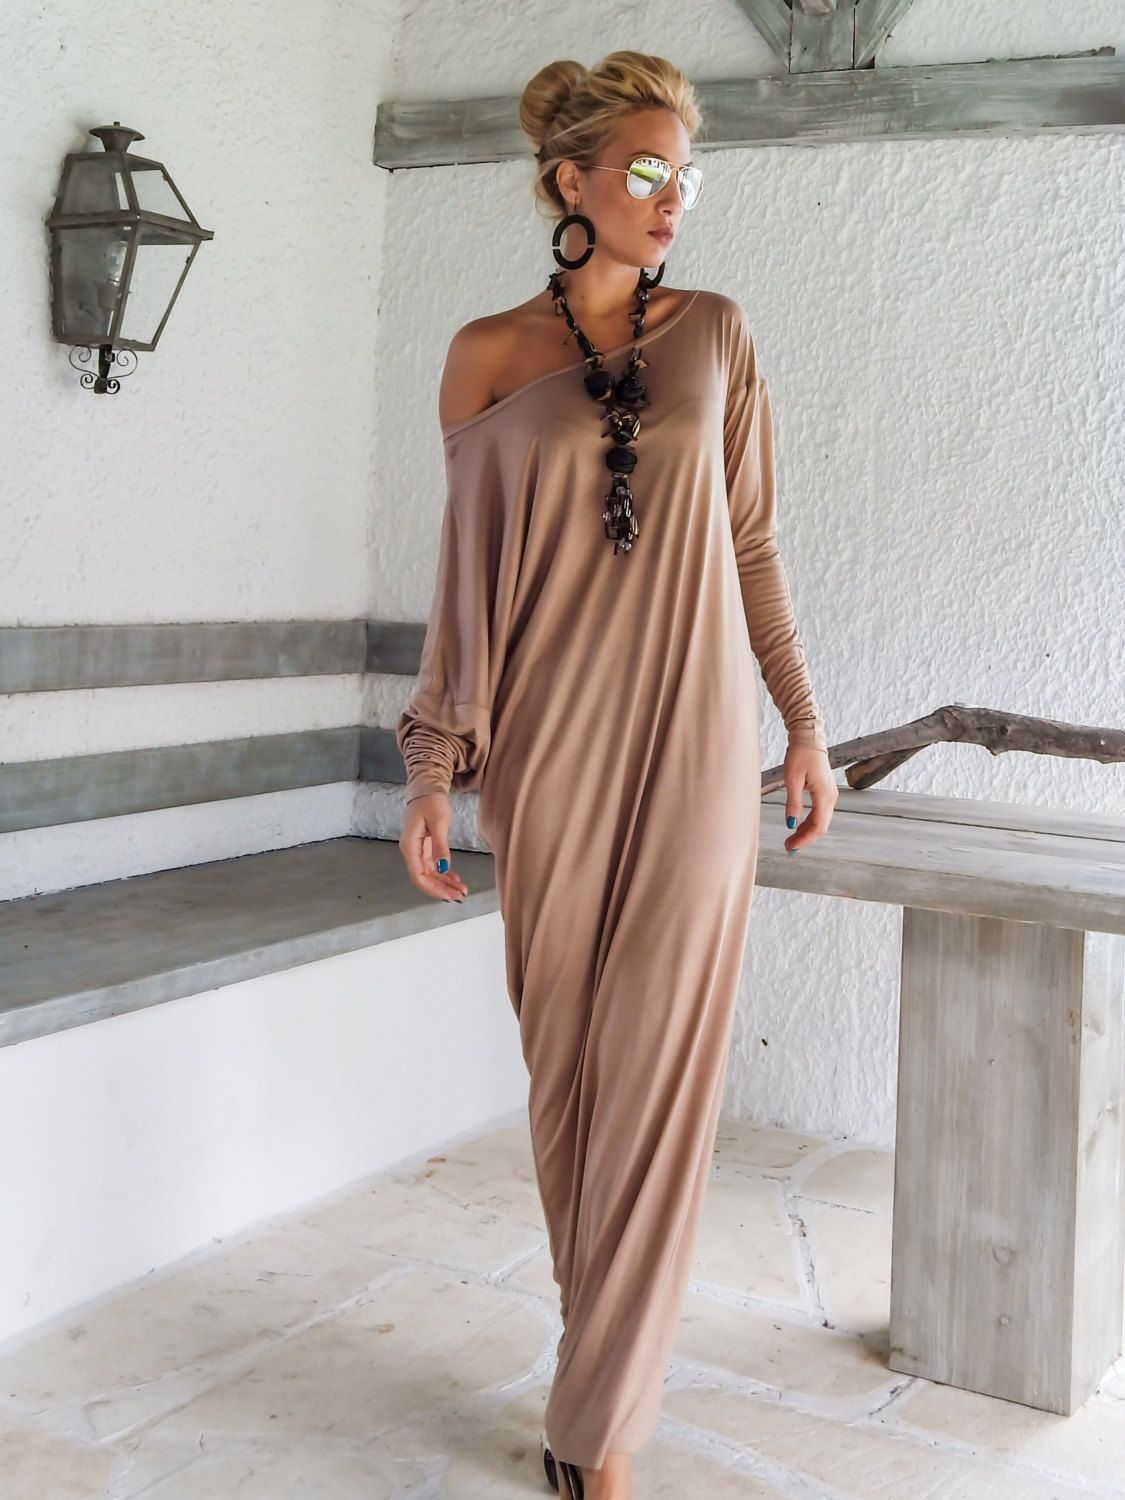 Black t shirt dress etsy - Taupe Maxi Long Sleeve Dress Taupe Kaftan Asymmetric Plus Size Dress Oversize Loose Dress By Synthiacouture On Etsy Im Weak For This